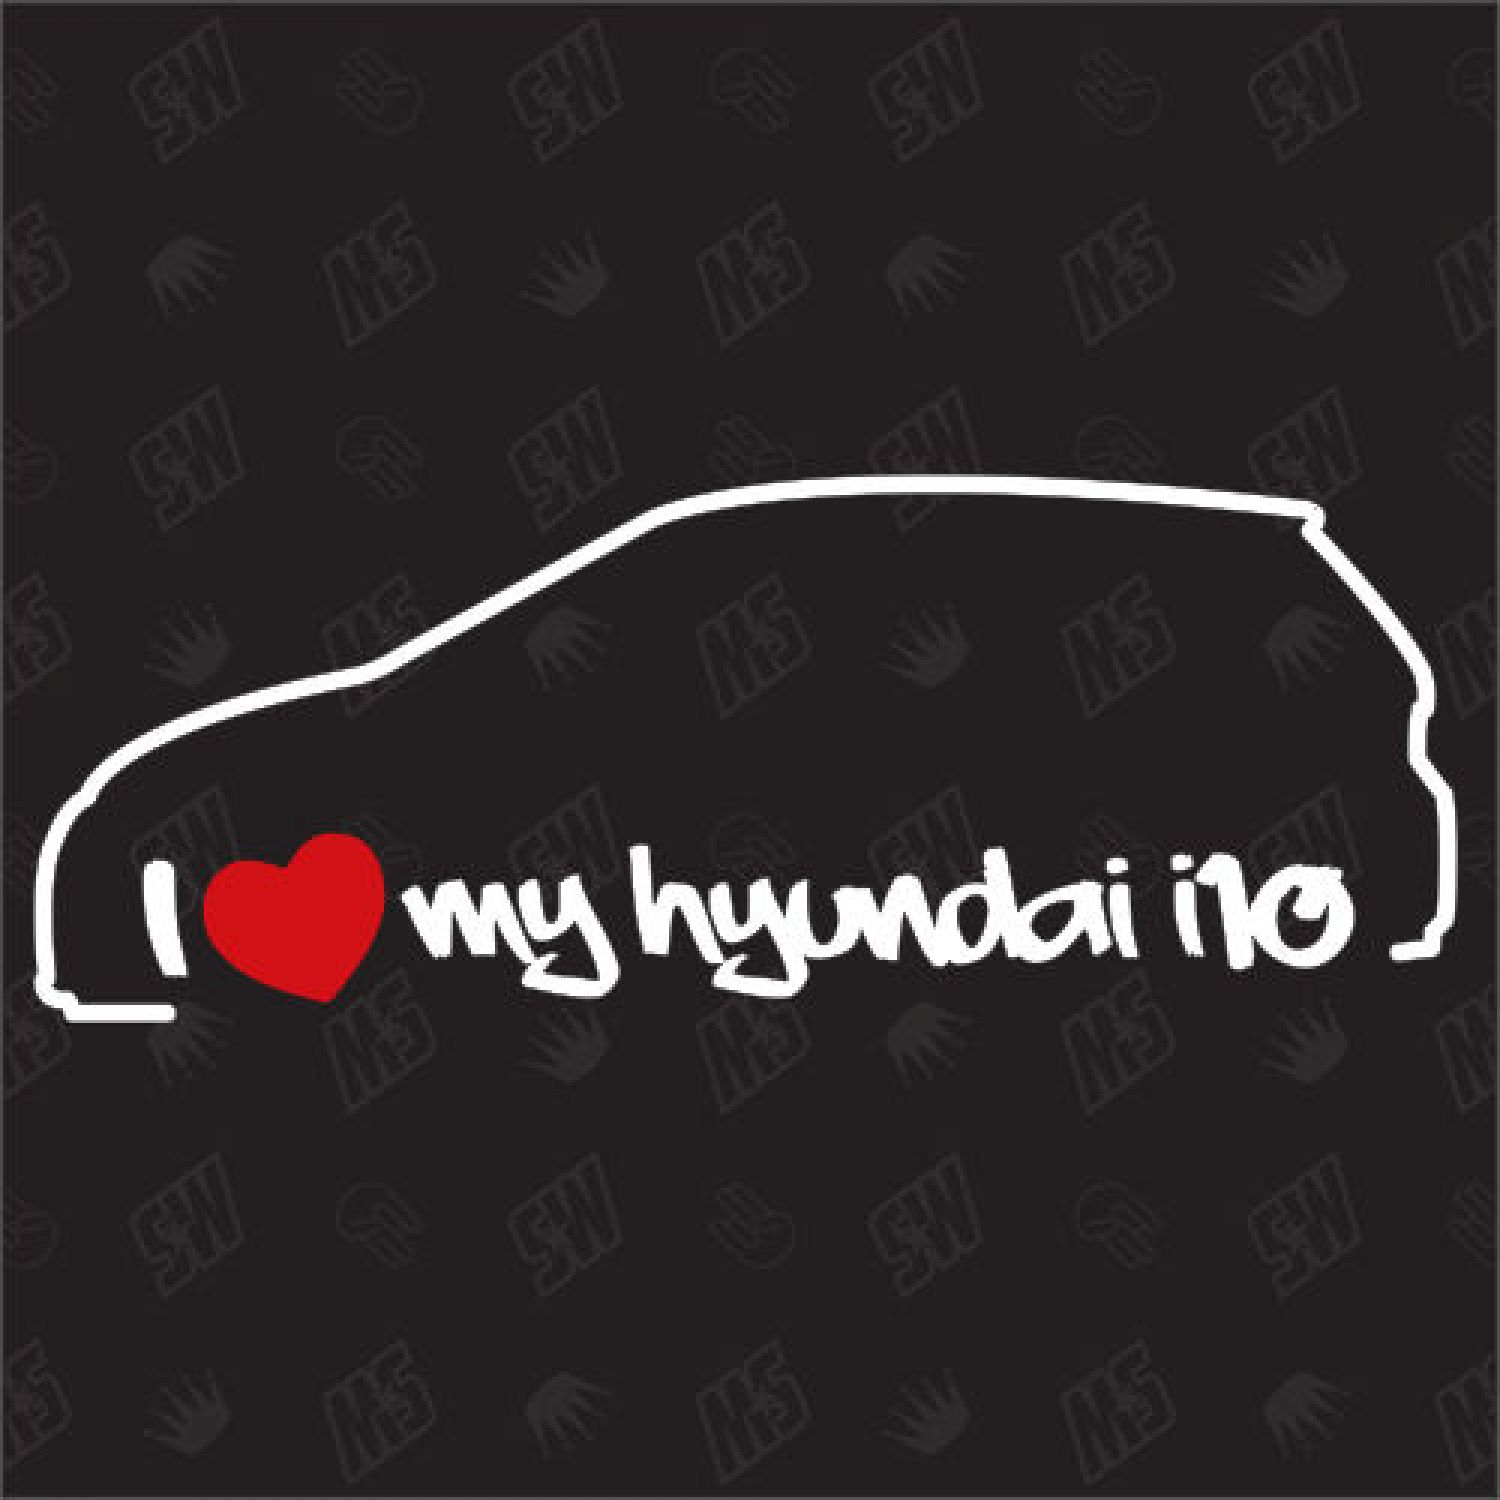 I Love My Hyundai I10 Fan Sticker Ia From Yr 13 Auto Tuning